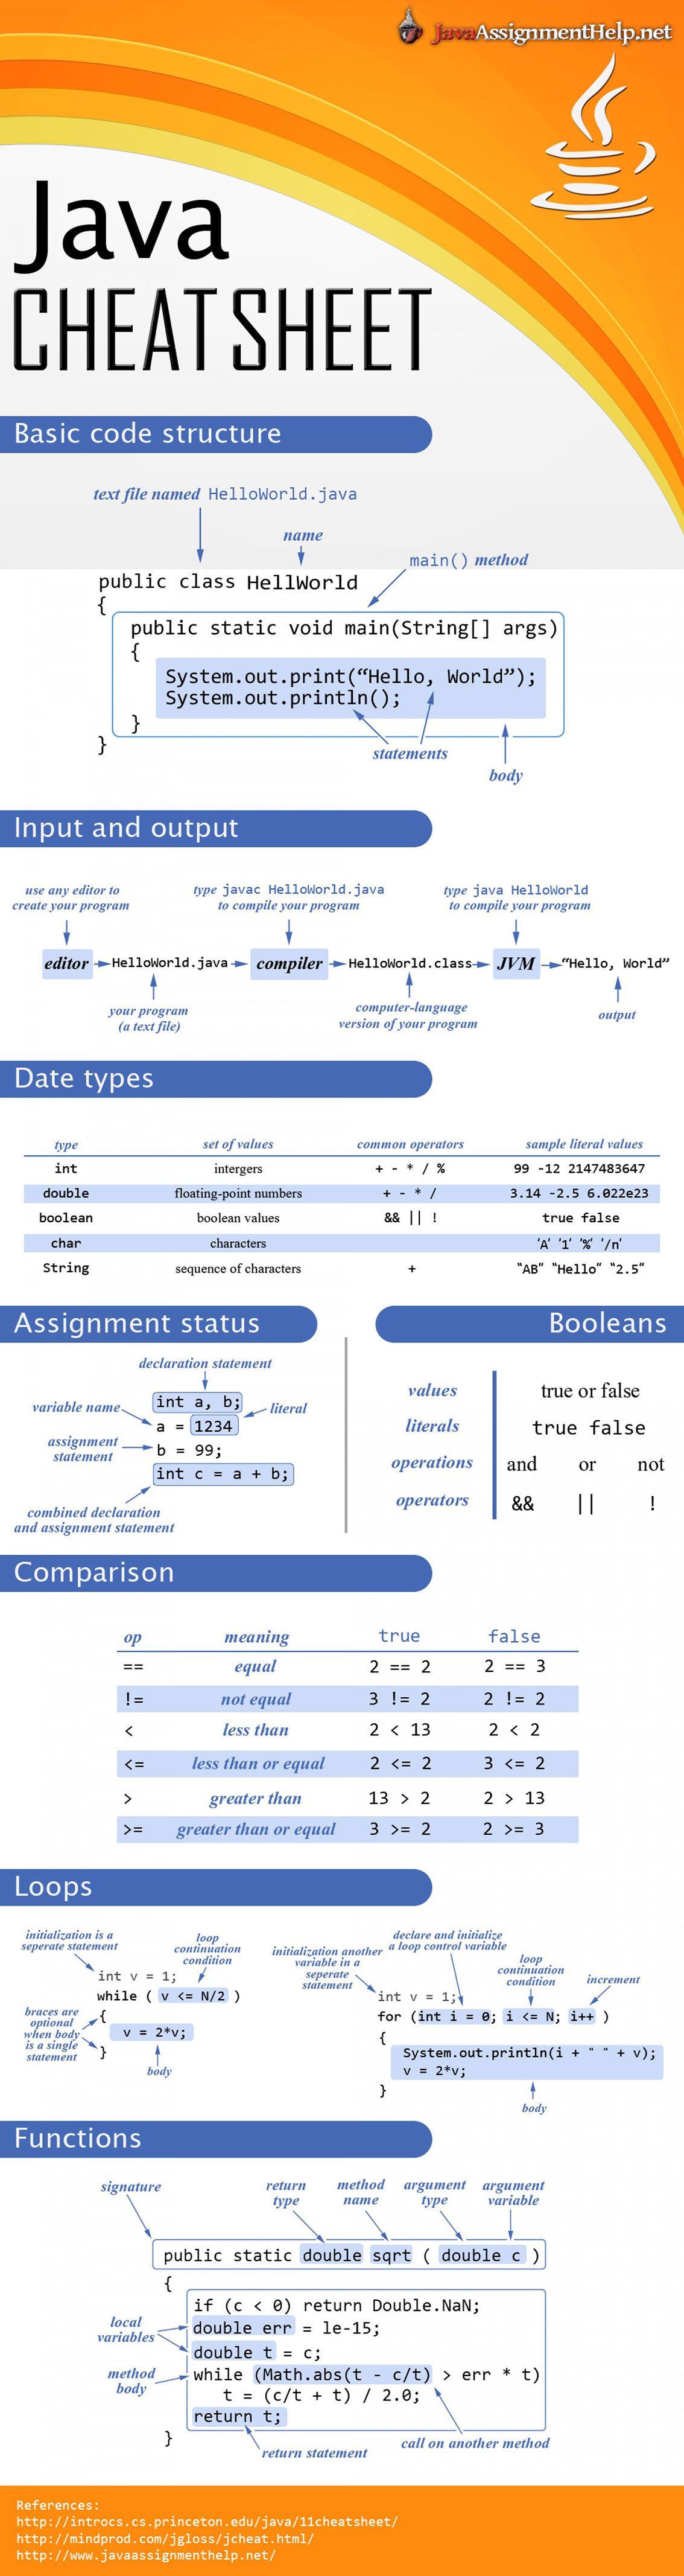 Java Cheat Sheet For Programmers Infographic